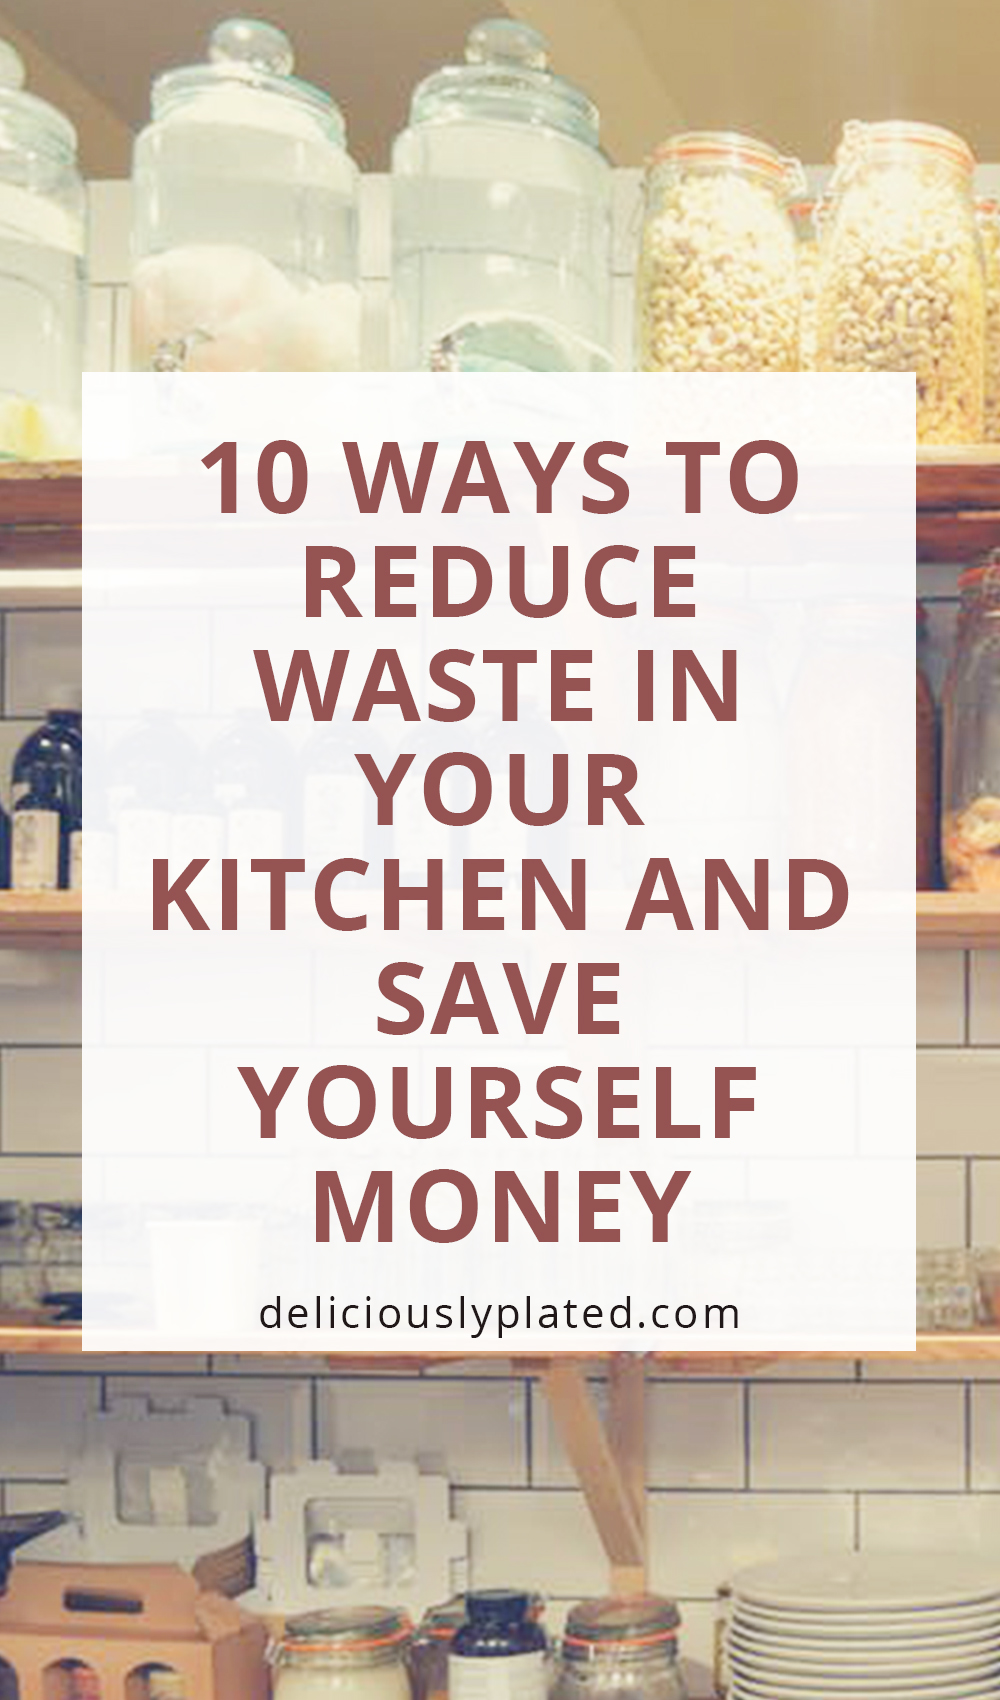 Reduce kitchen waste and save money